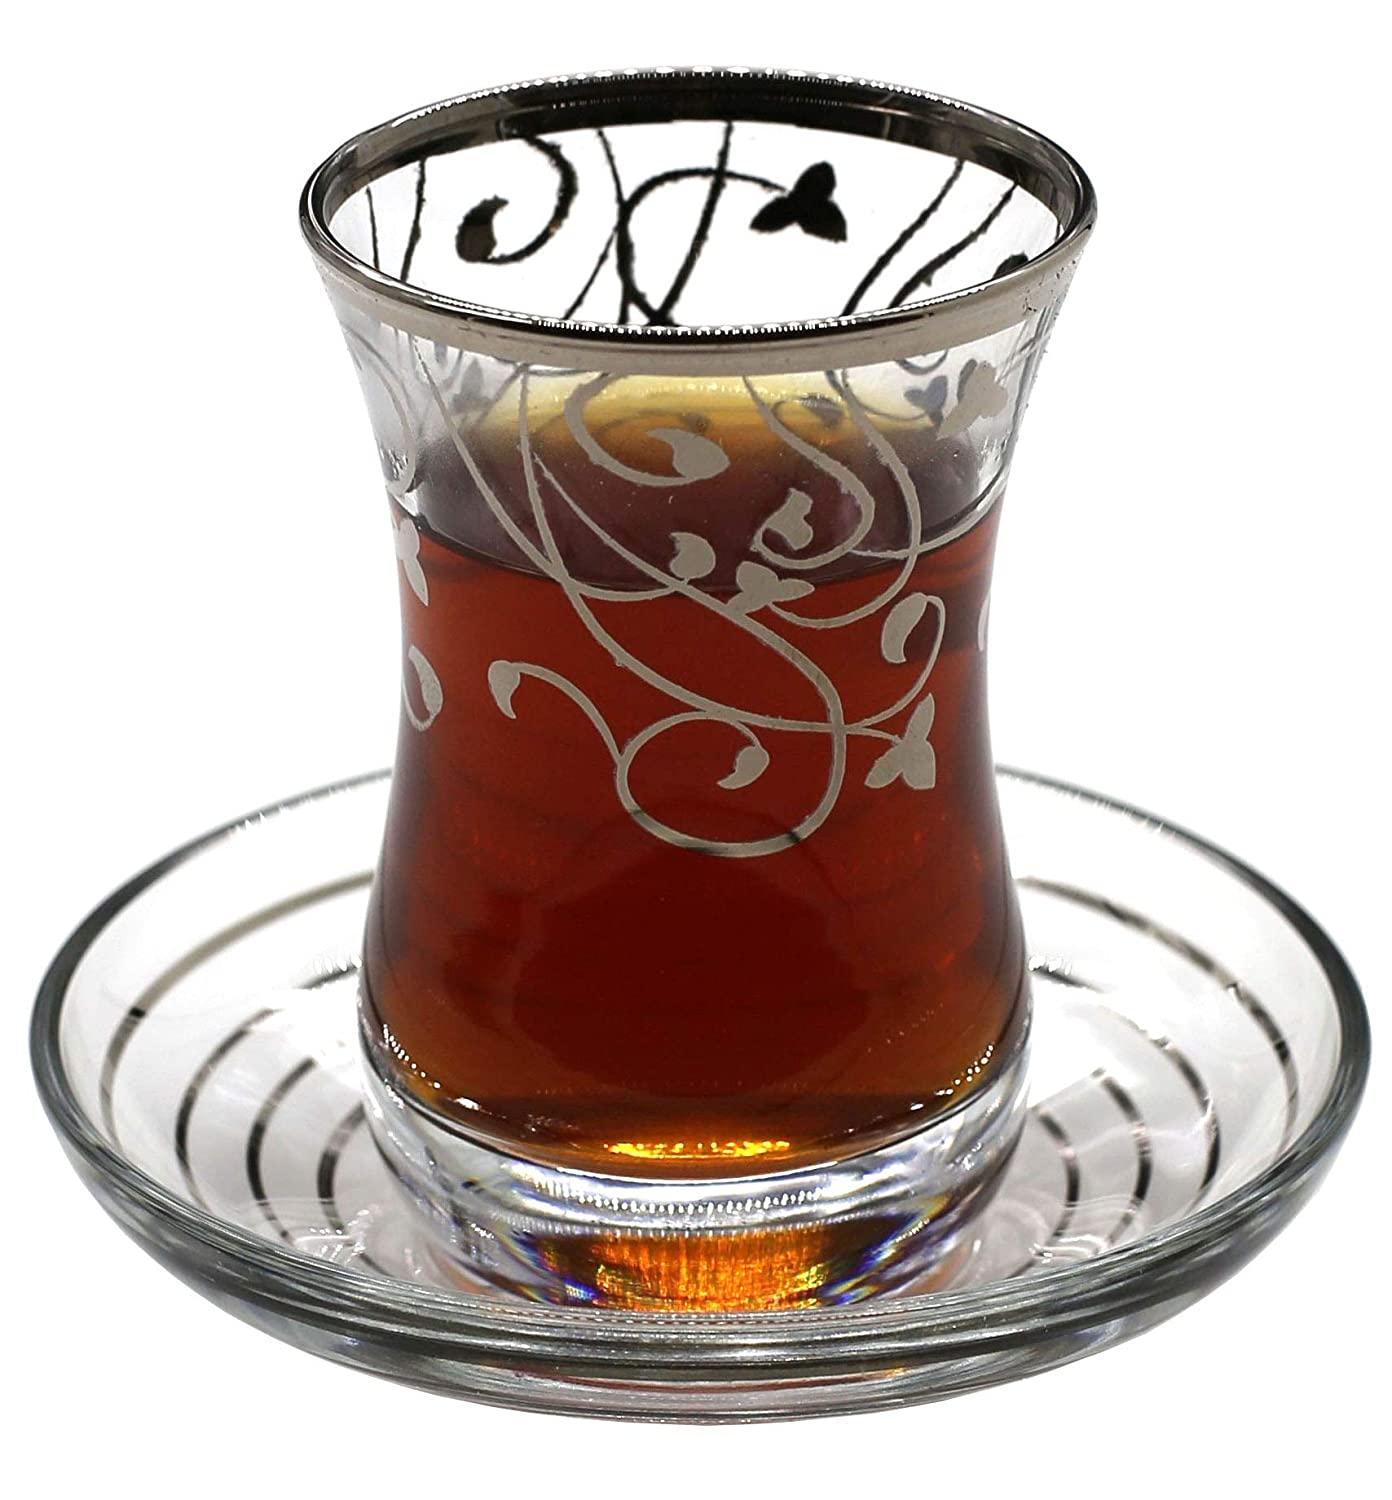 Babil Turkish Tea Glasses with Saucers Set (Set of 6) 3 OZ ABKA